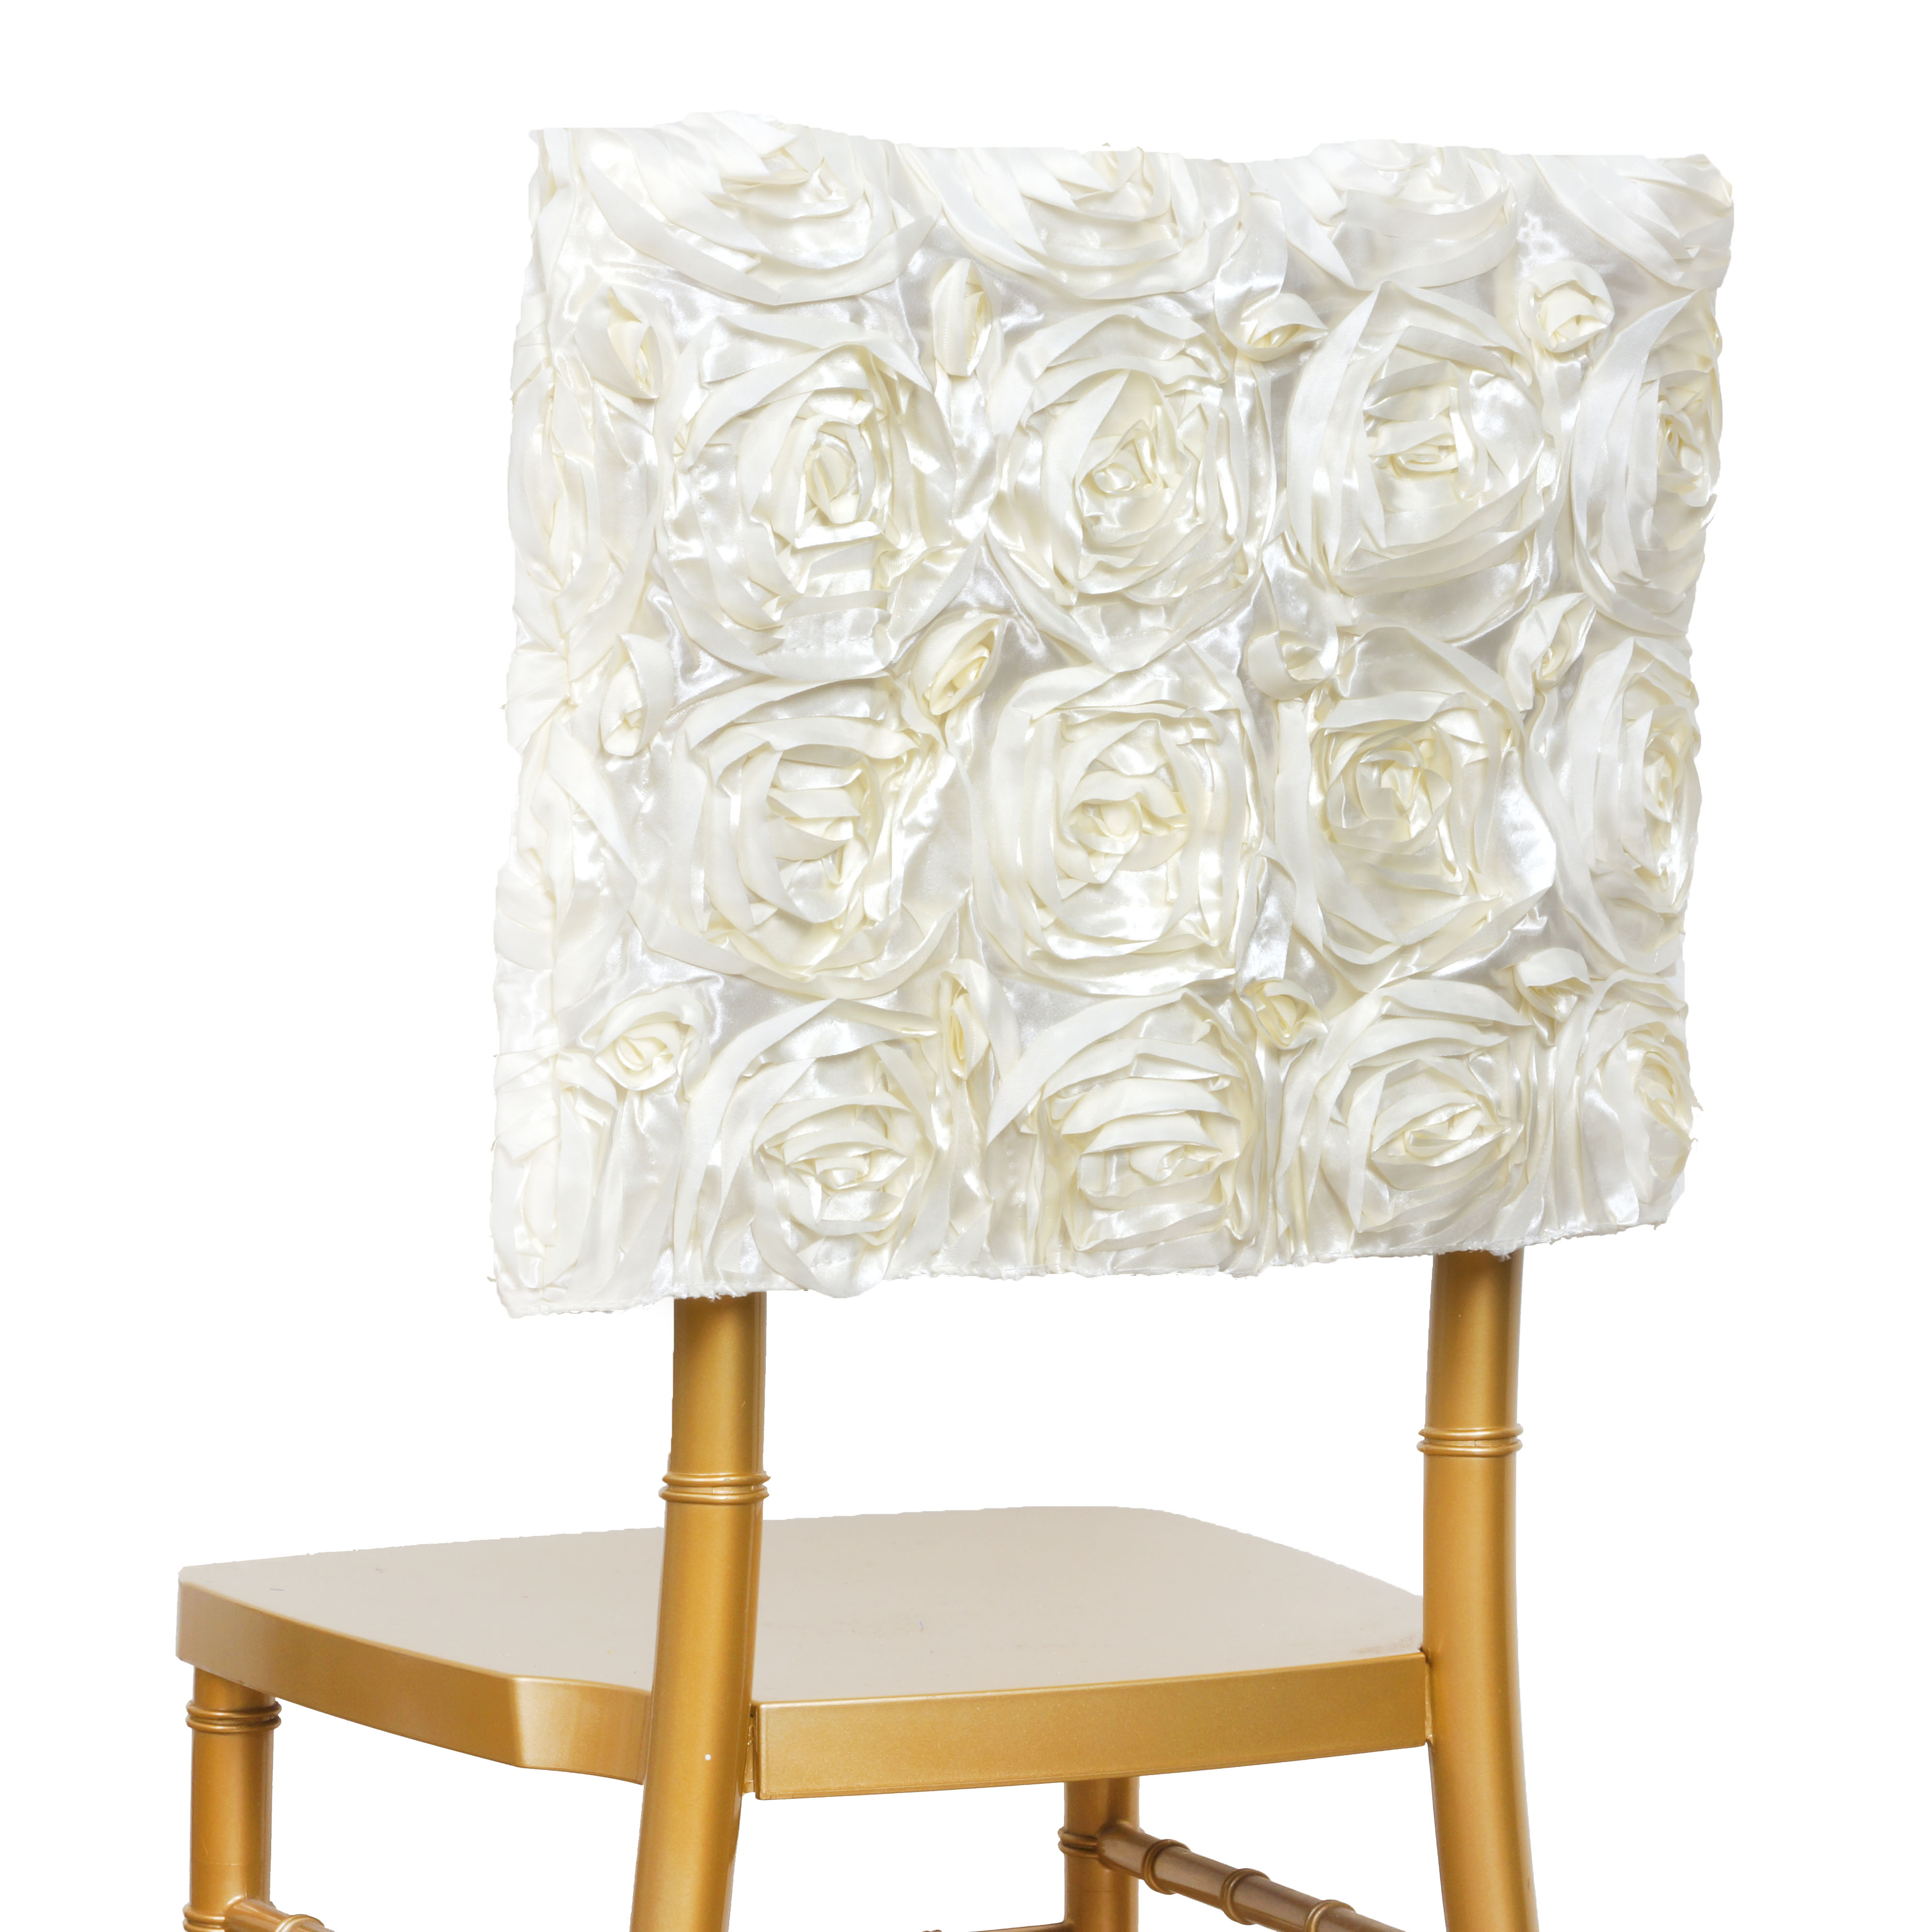 cheap chair cover decorations white modern chairs with wood legs 100 pcs satin ribbon roses square cap covers wedding